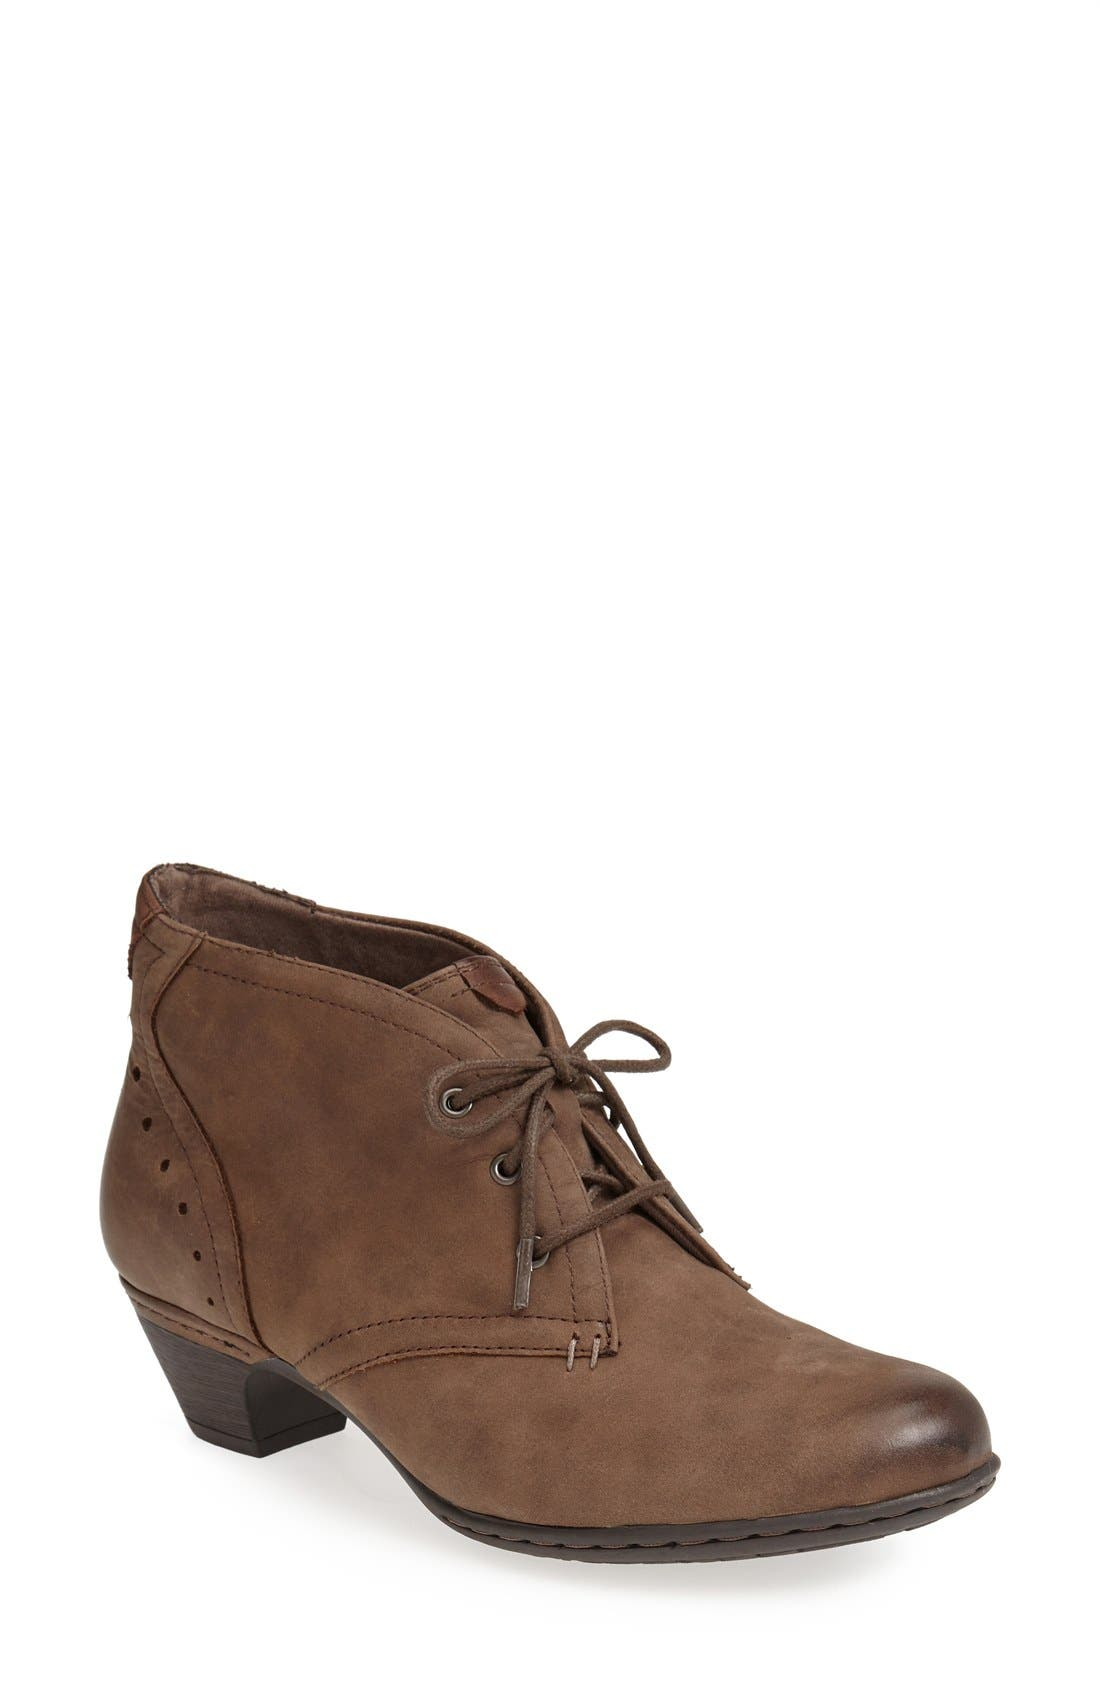 ROCKPORT COBB HILL Aria Leather Boot, Main, color, STONE